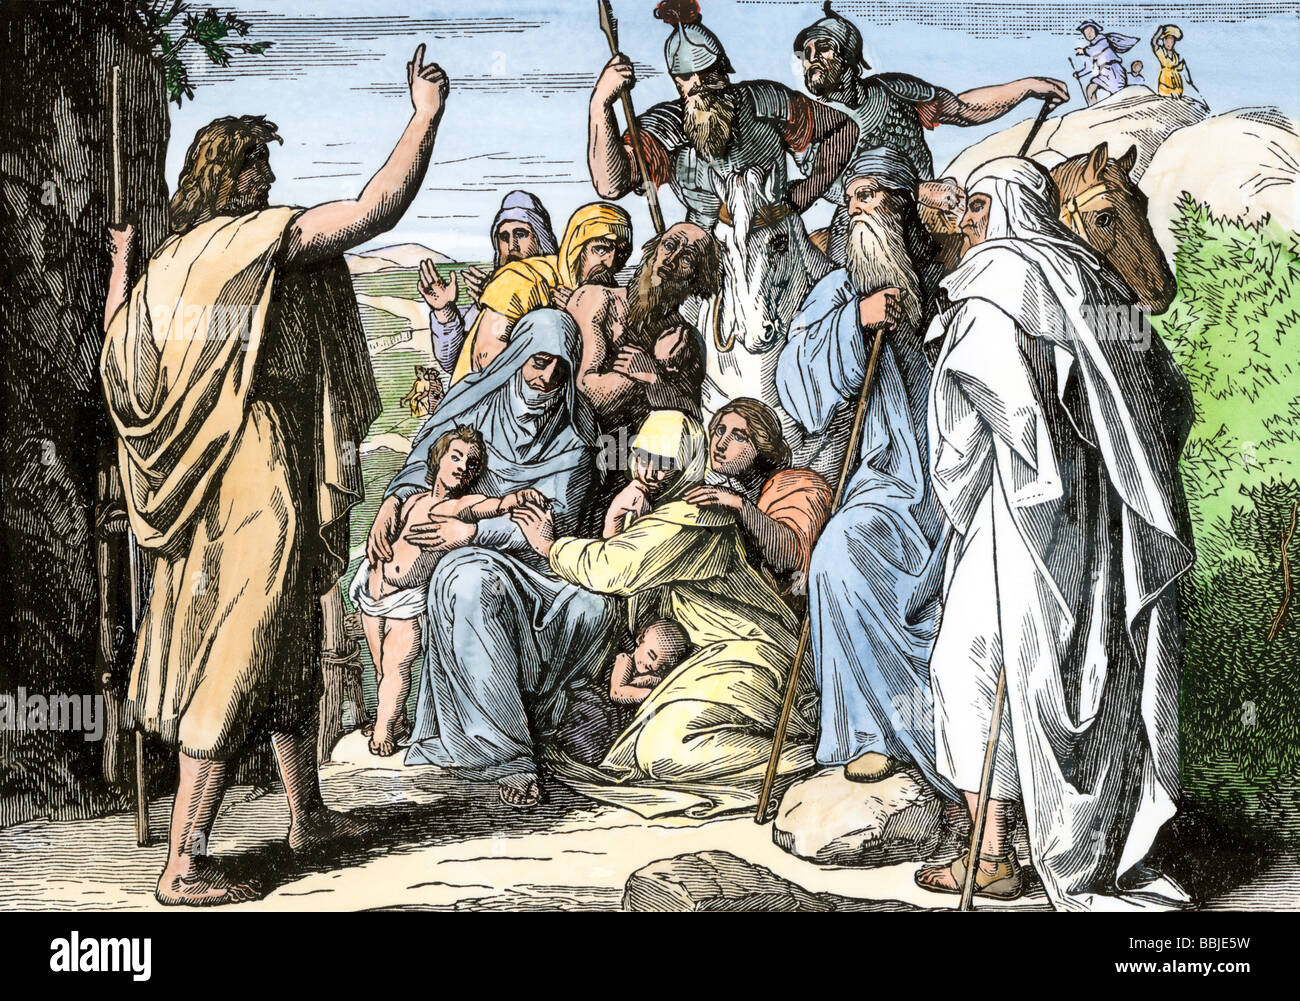 John the Baptist foretelling the coming of a messiah. Hand-colored woodcut - Stock Image